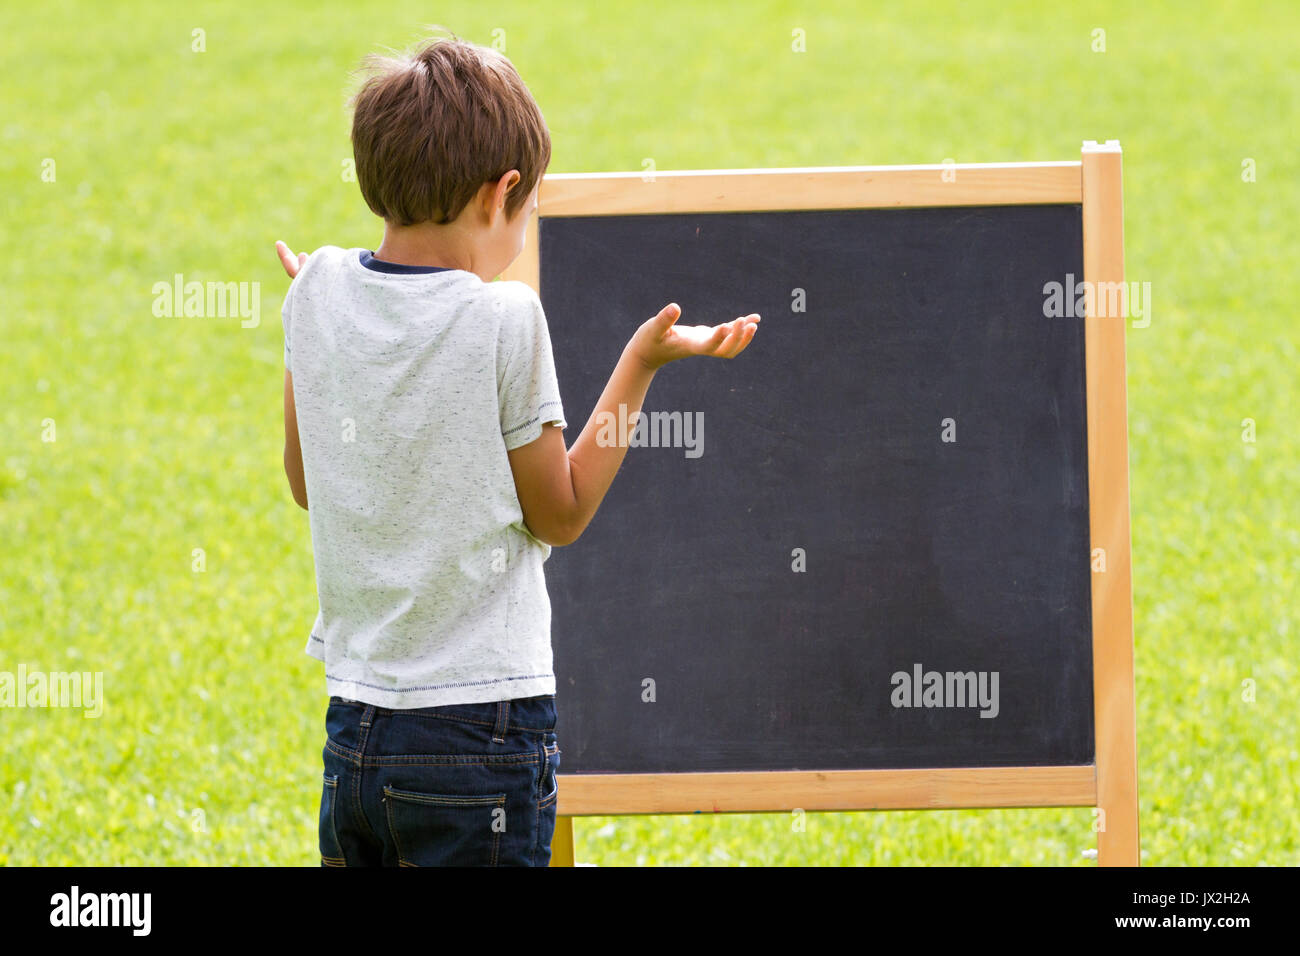 Thinking child by the blackboard outdoors - Stock Image